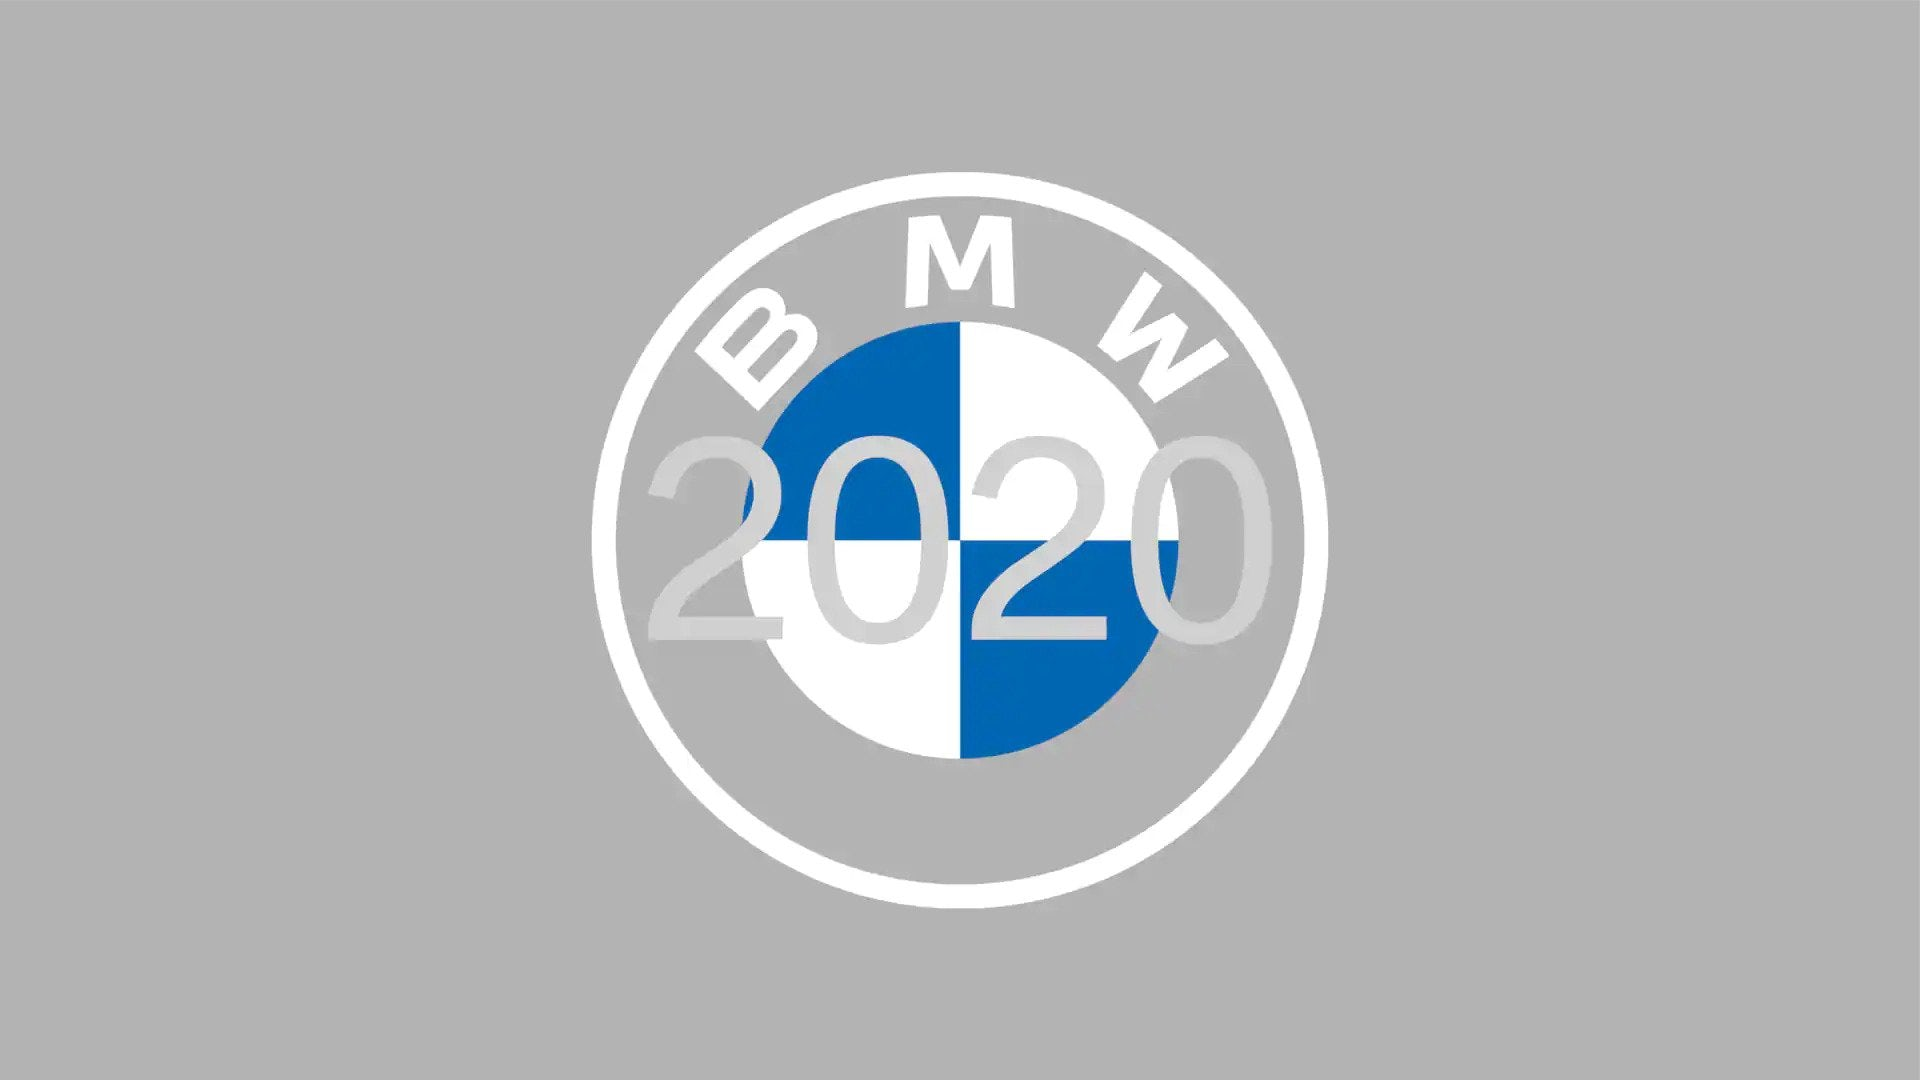 BMW logo redesign for 2020